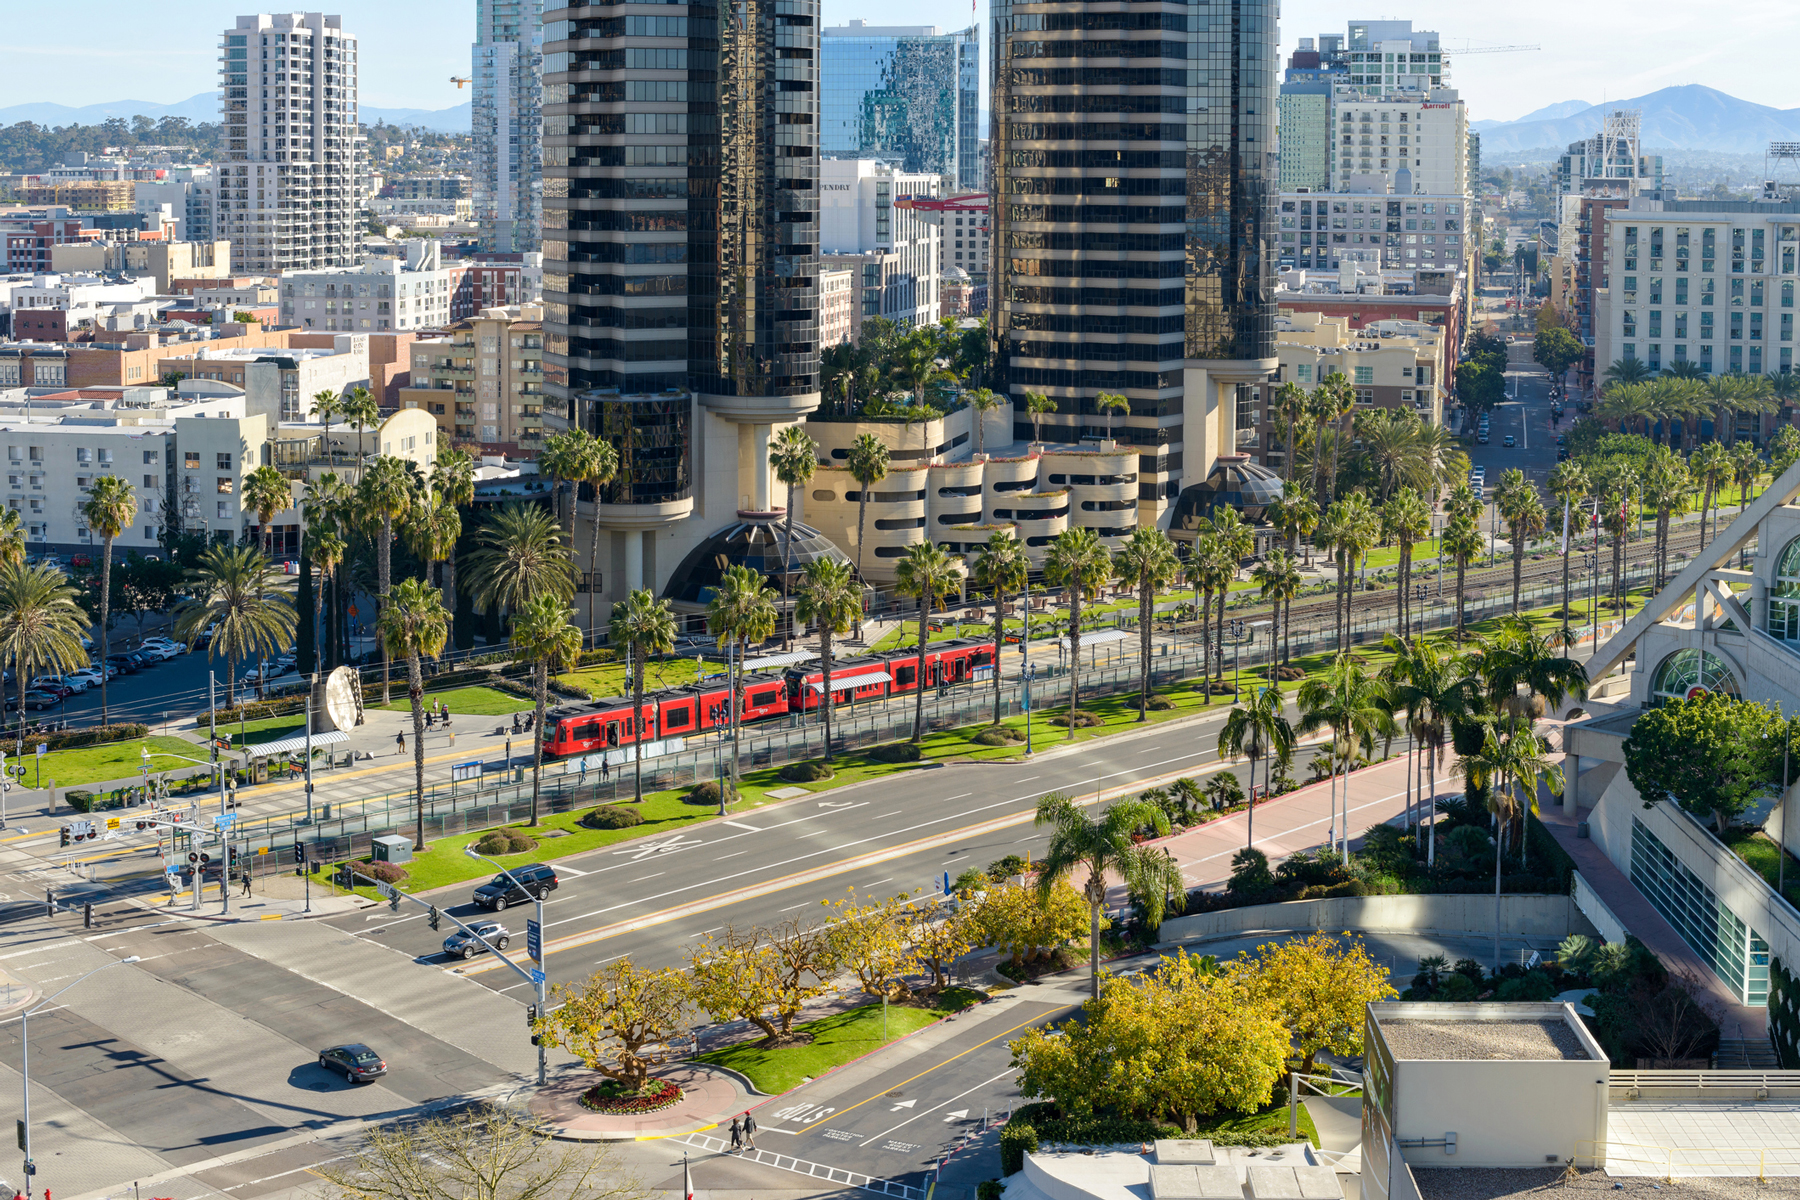 An aerial view of a red San Diego Trolley stopping at a station on East Harbor Drive in Marina District of Downtown San Diego, California